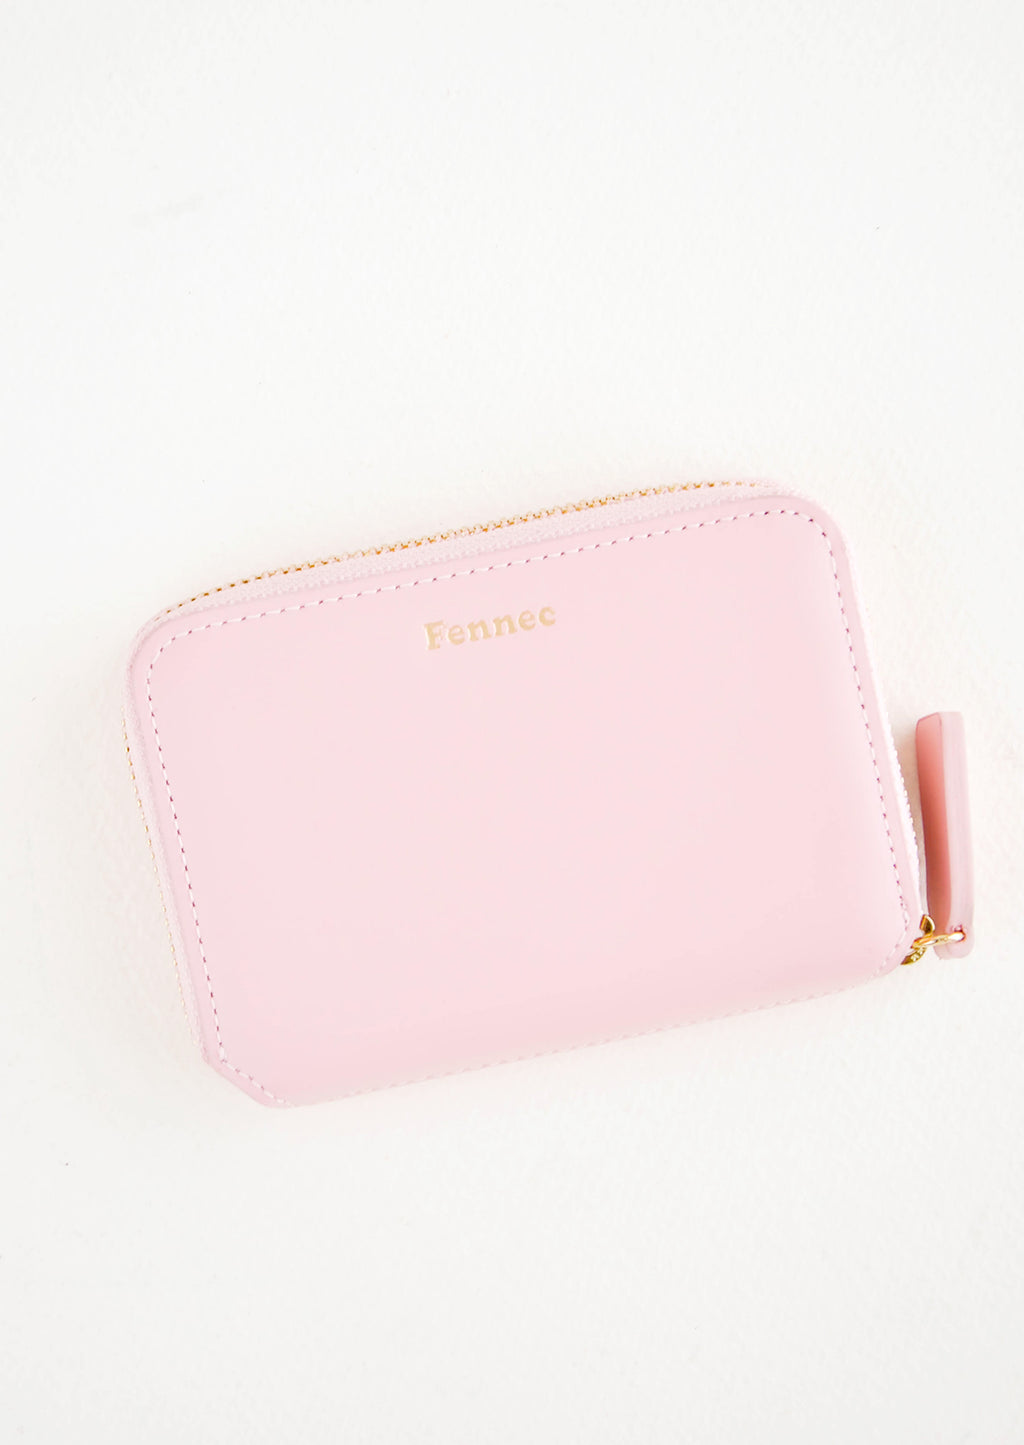 Pale Pink: Pale pink leather zip wallet with brand name Fennec embossed in small gold letters at top center of wallet face.